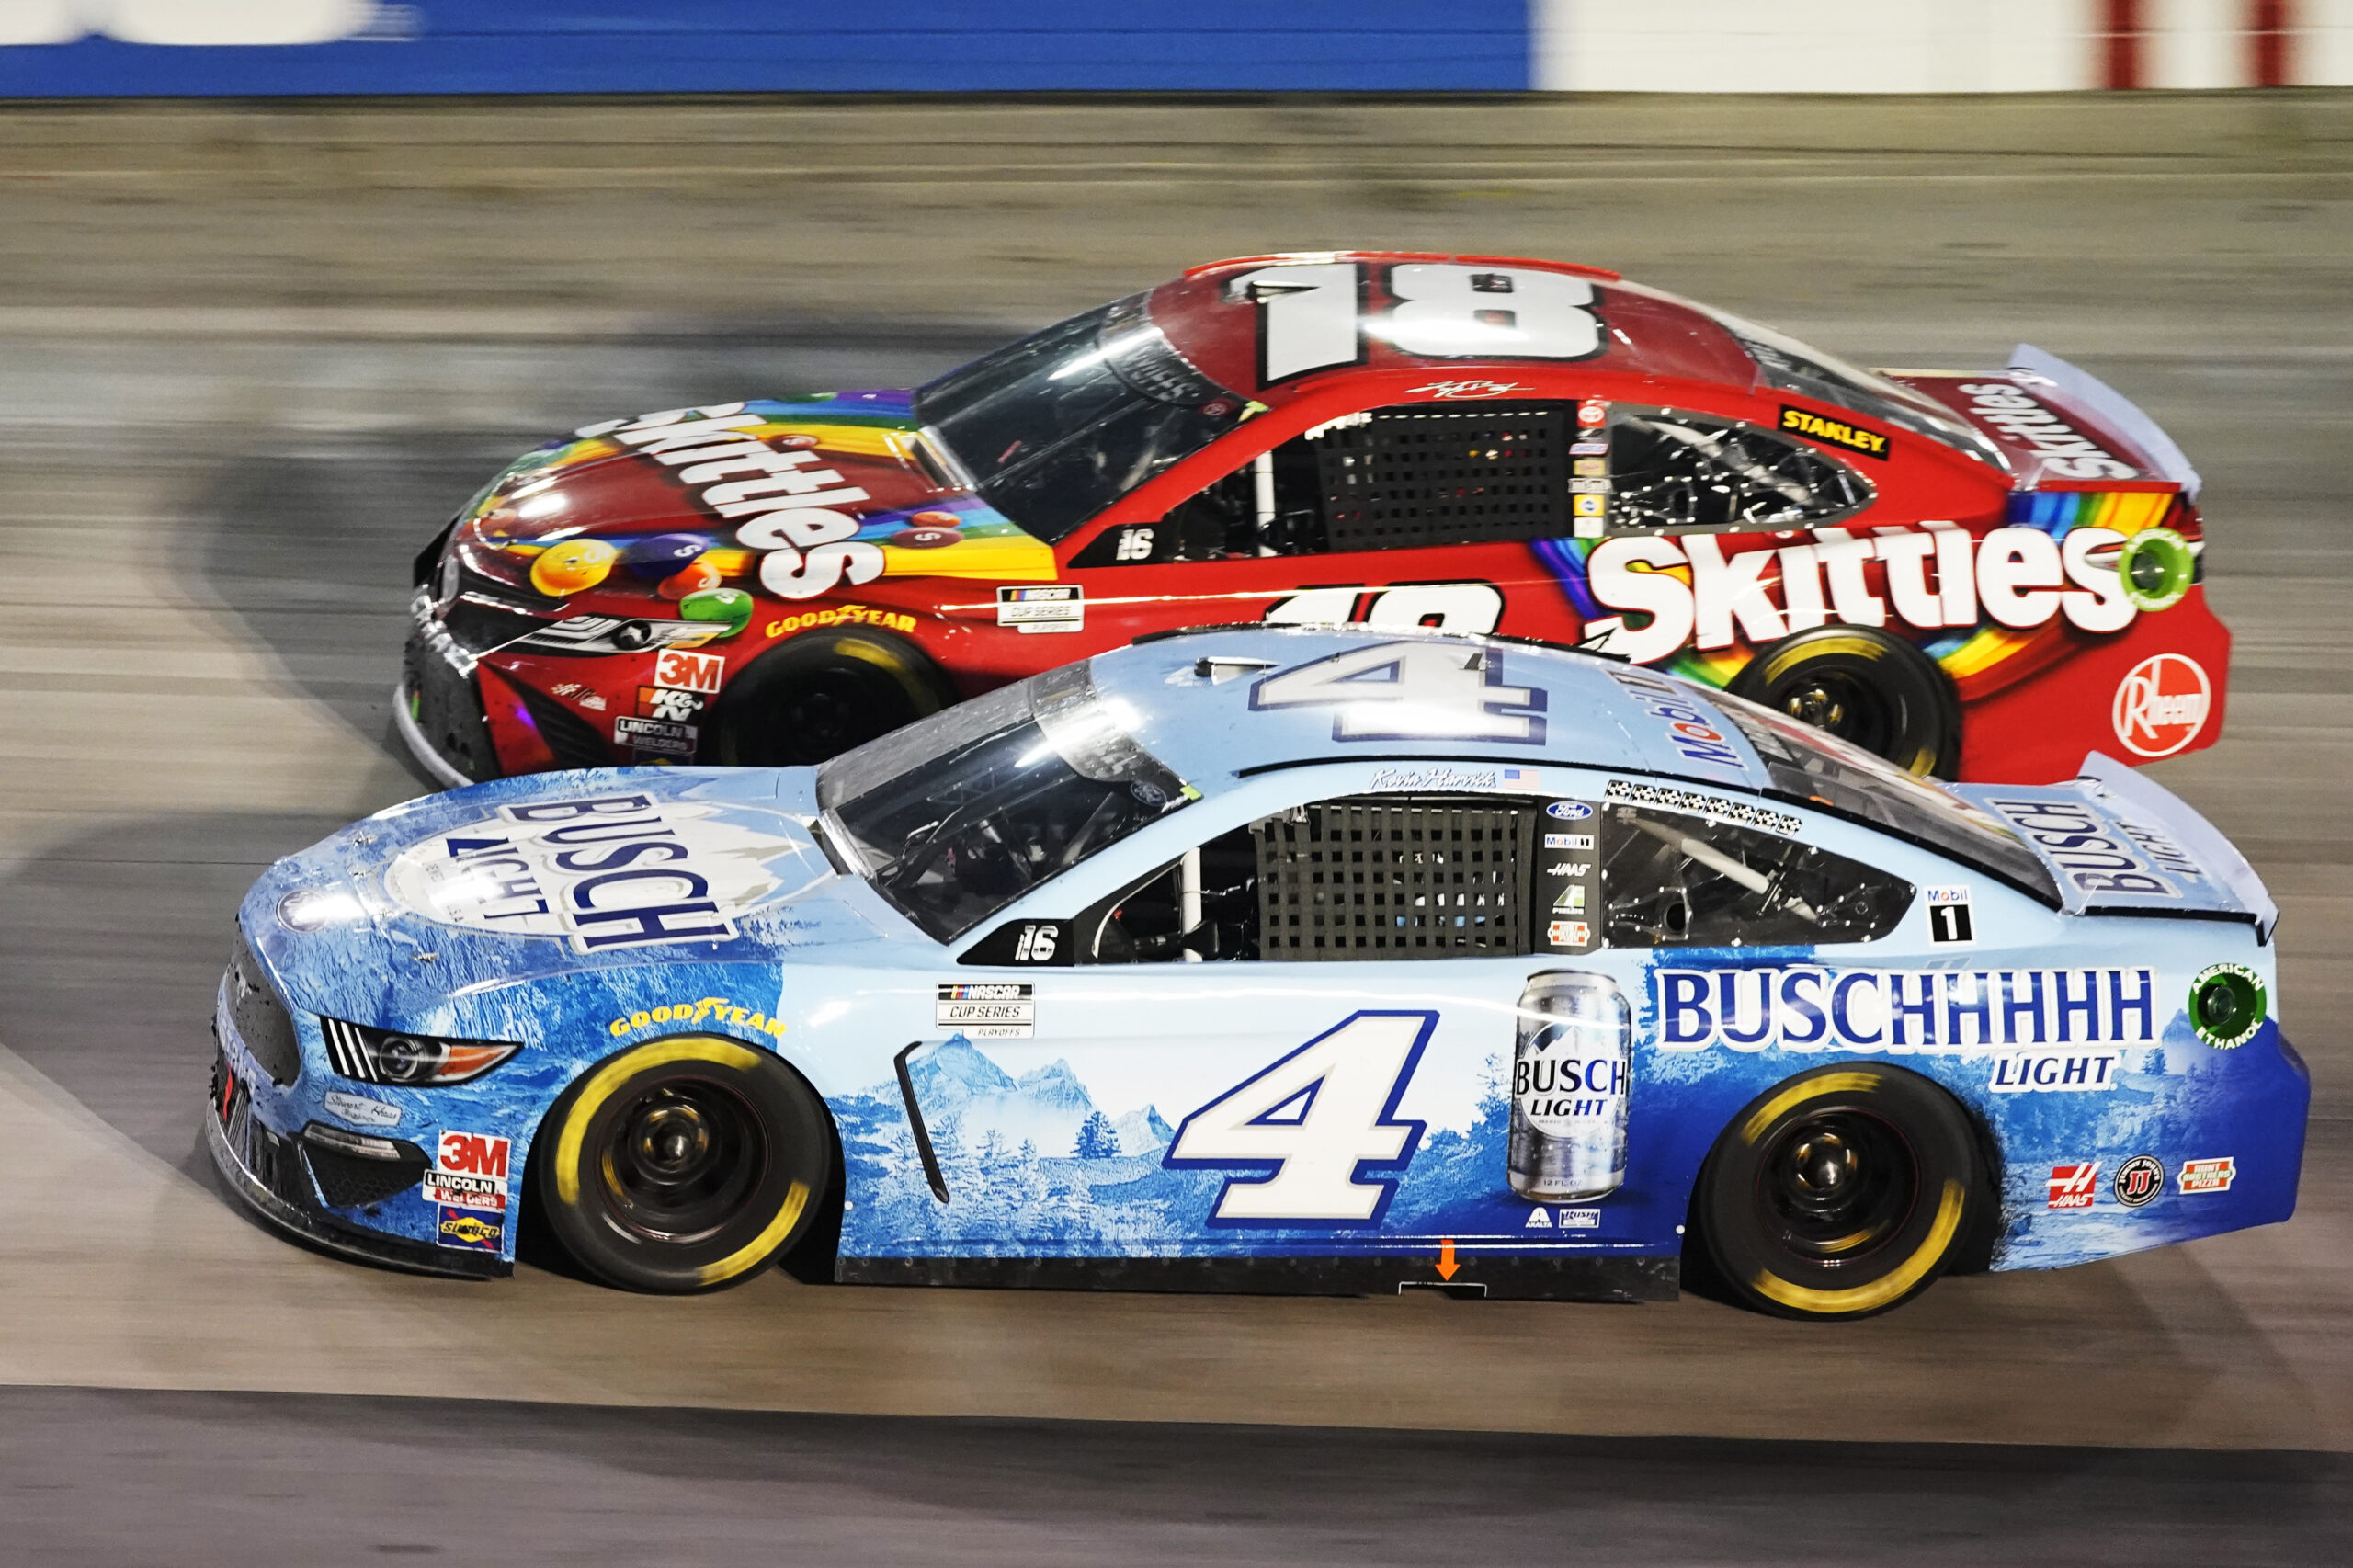 2020 NASCAR Race Season: What's New in 2020 Rules?